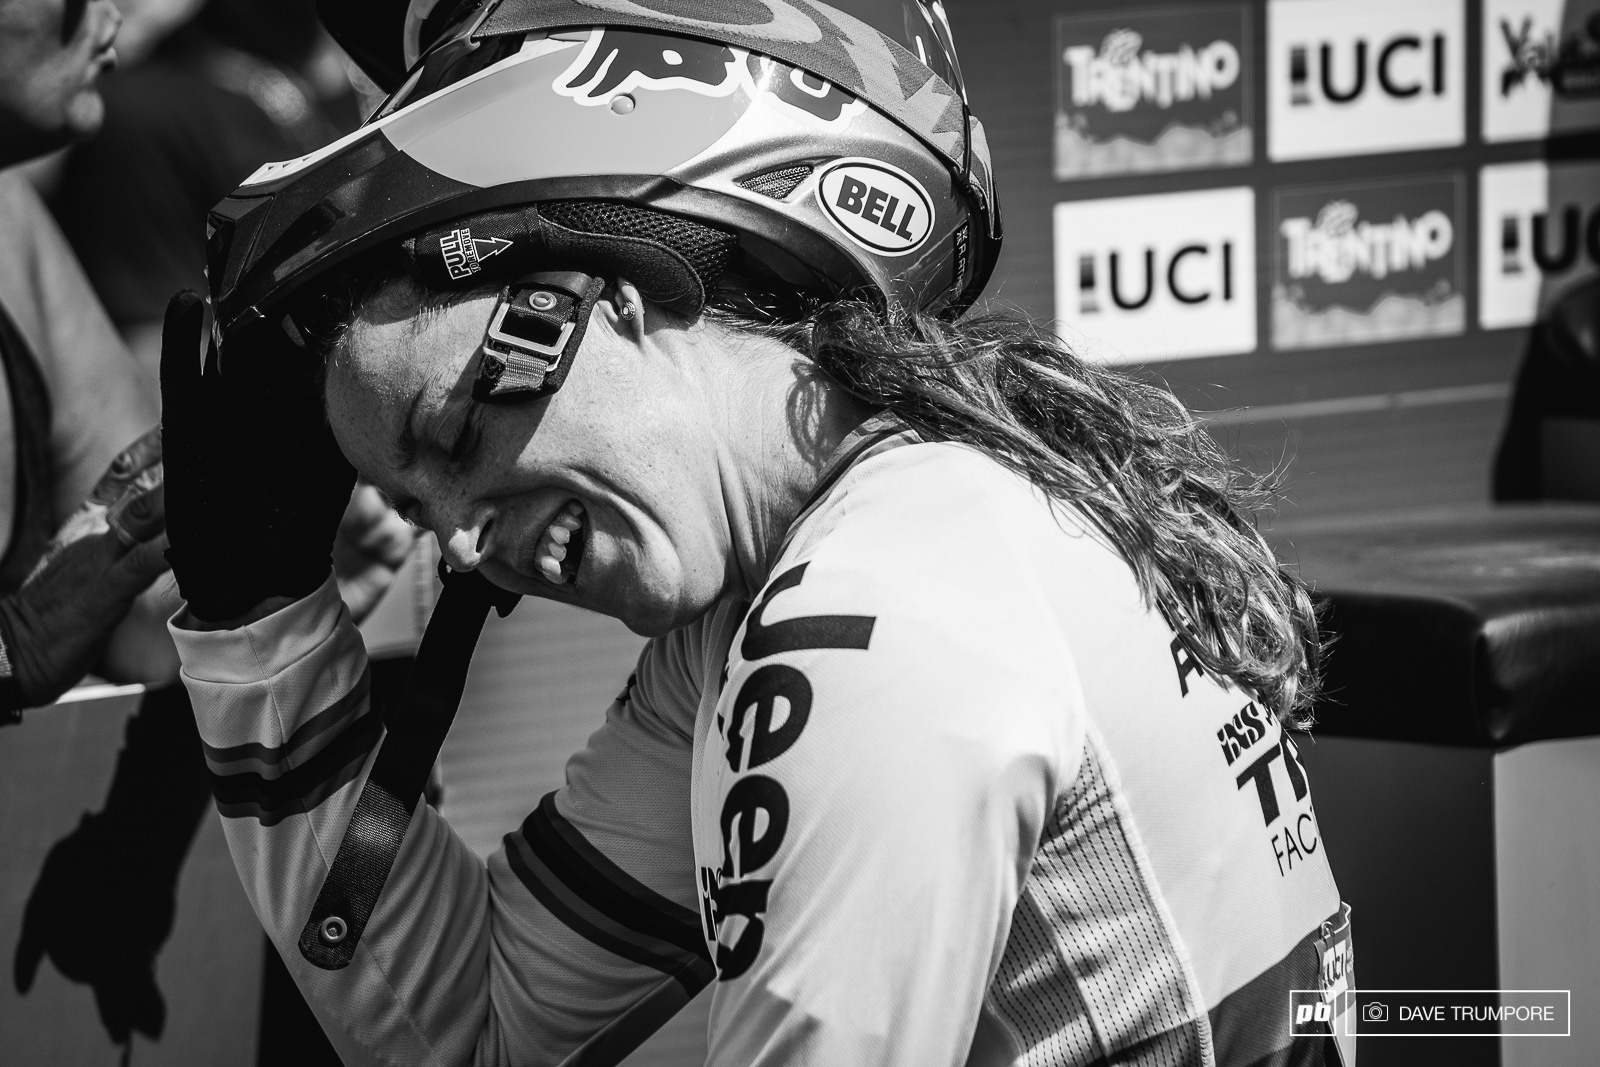 Rachel Atherton must surely be glad to have the season over with. Just World Champs to go and she can begin to focus on getting healthy again.